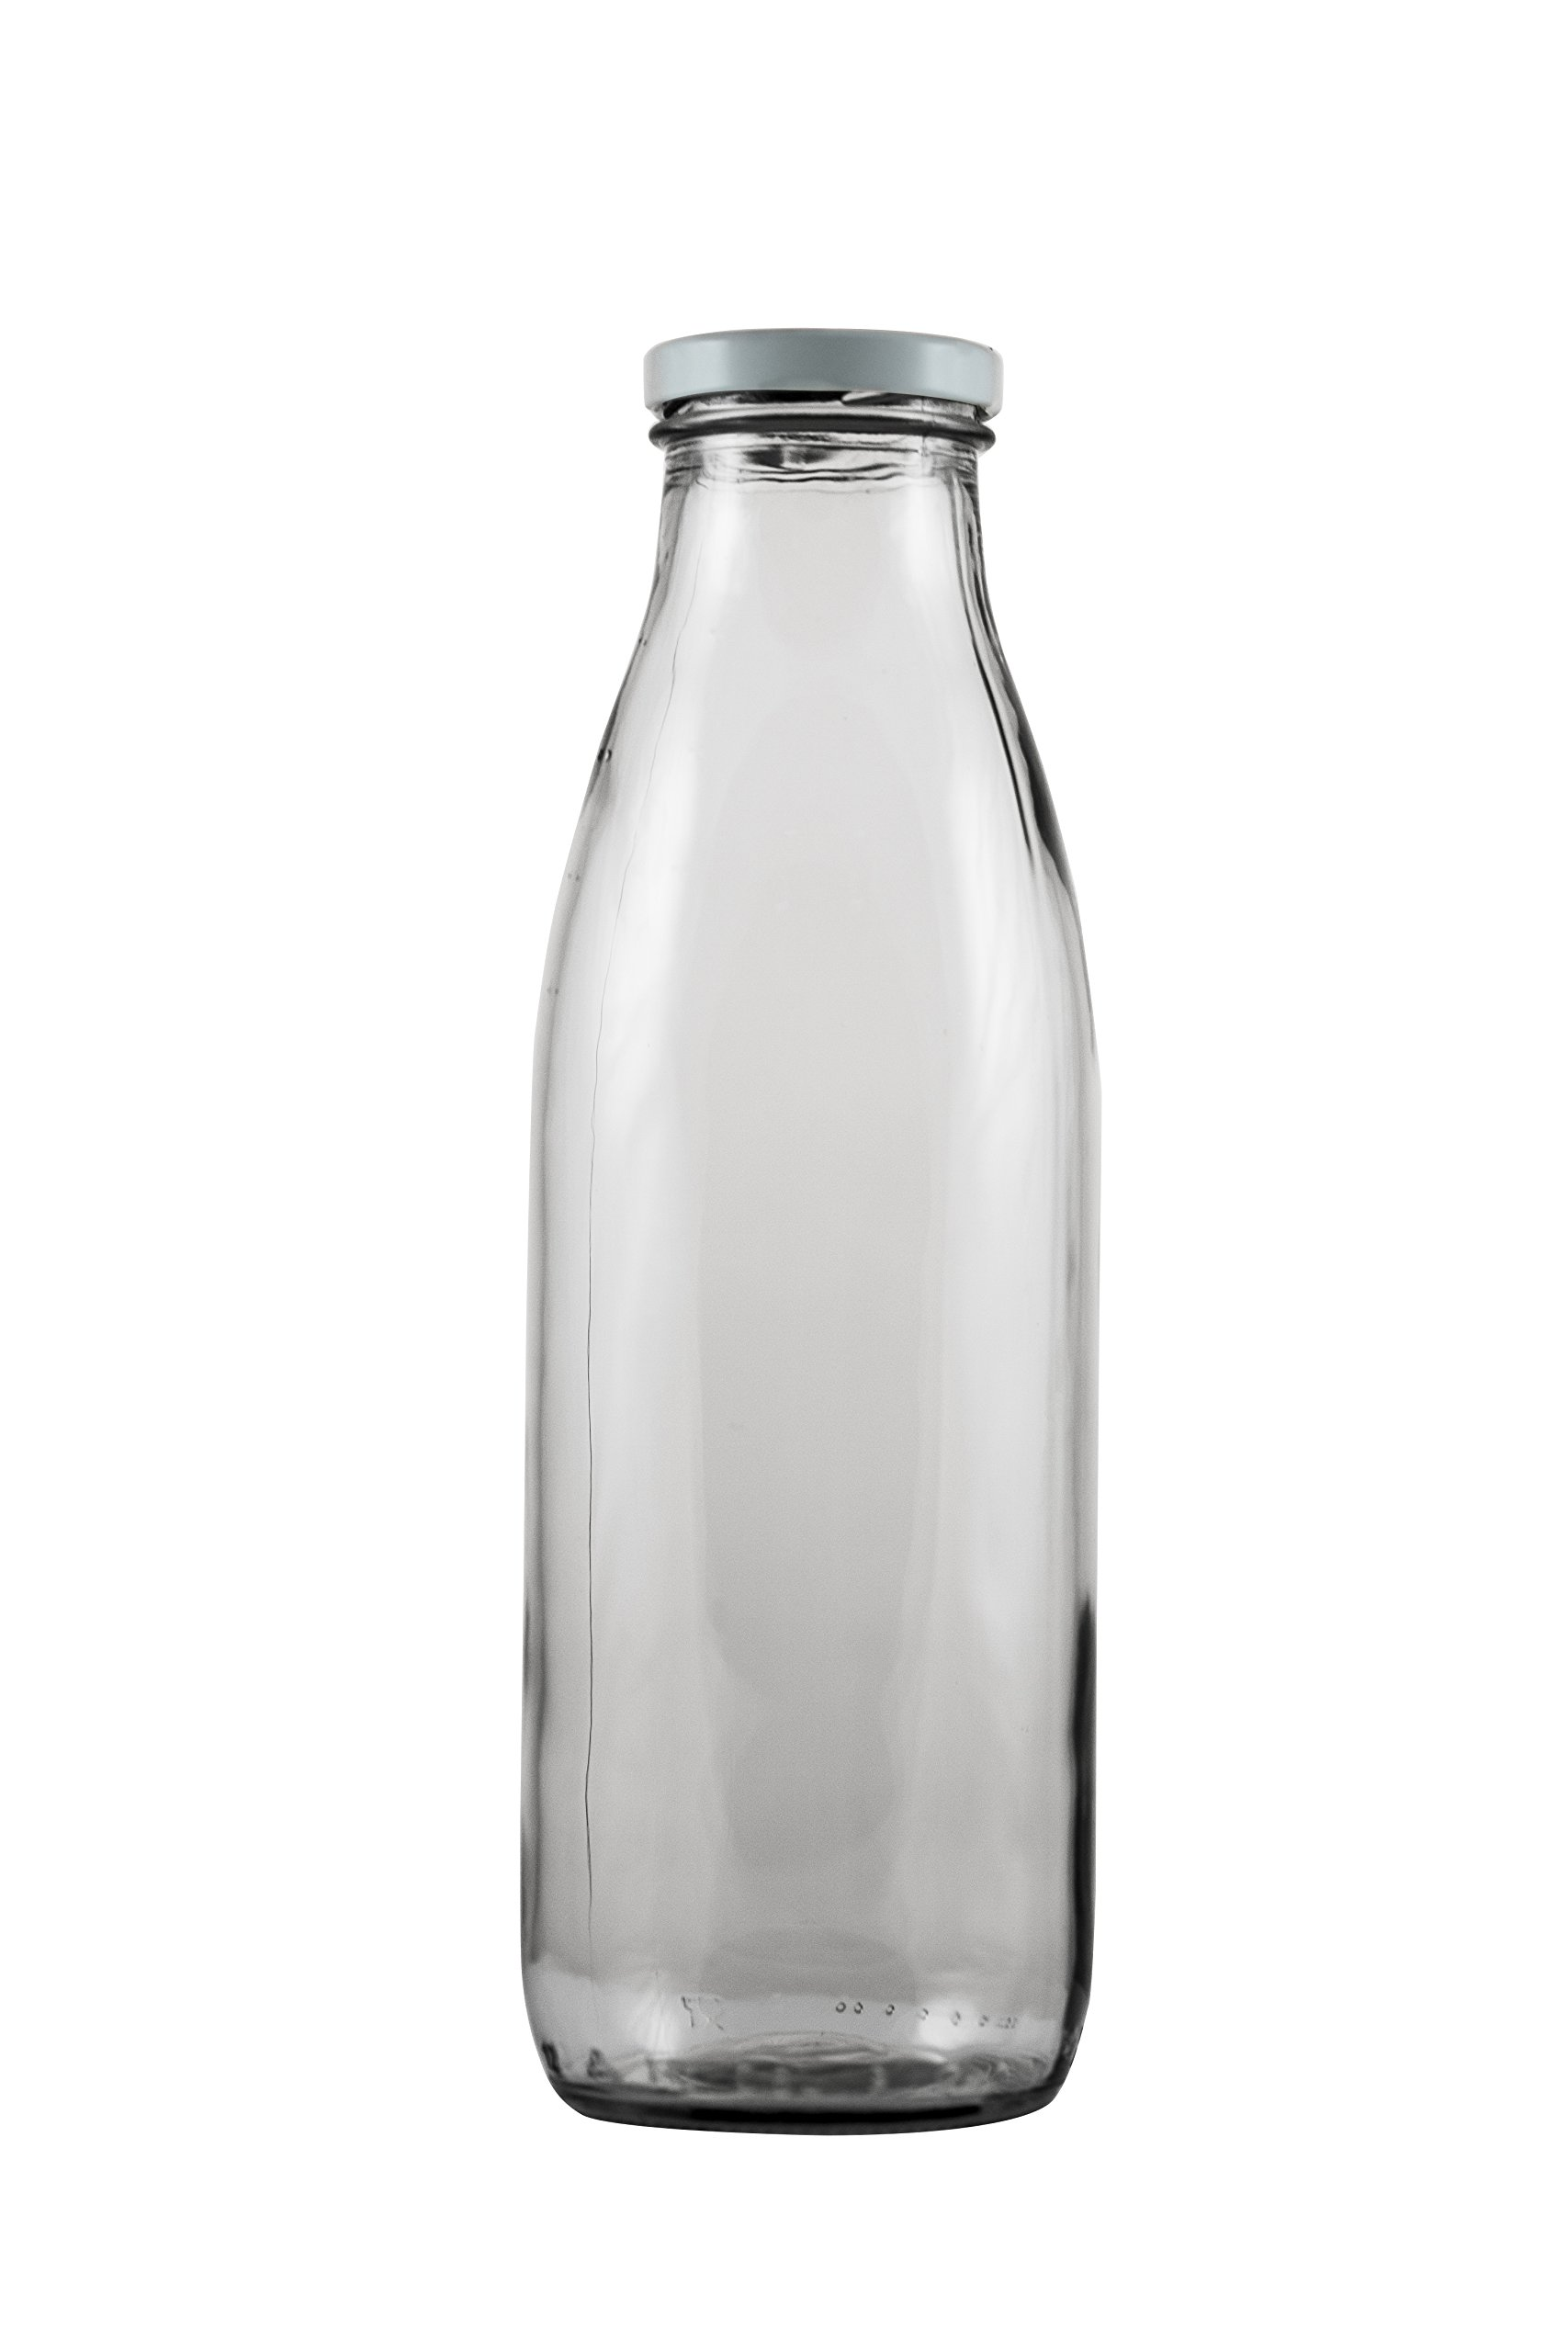 PrestoWare GBM27, 0.82L / 27.7-ounce Clear Glass Milk Bottle with Lid, Vintage Style Bottle for Home Brewing, Milk Juice Water Oil Vinegar Glass Bottle with Metal Cover (1)